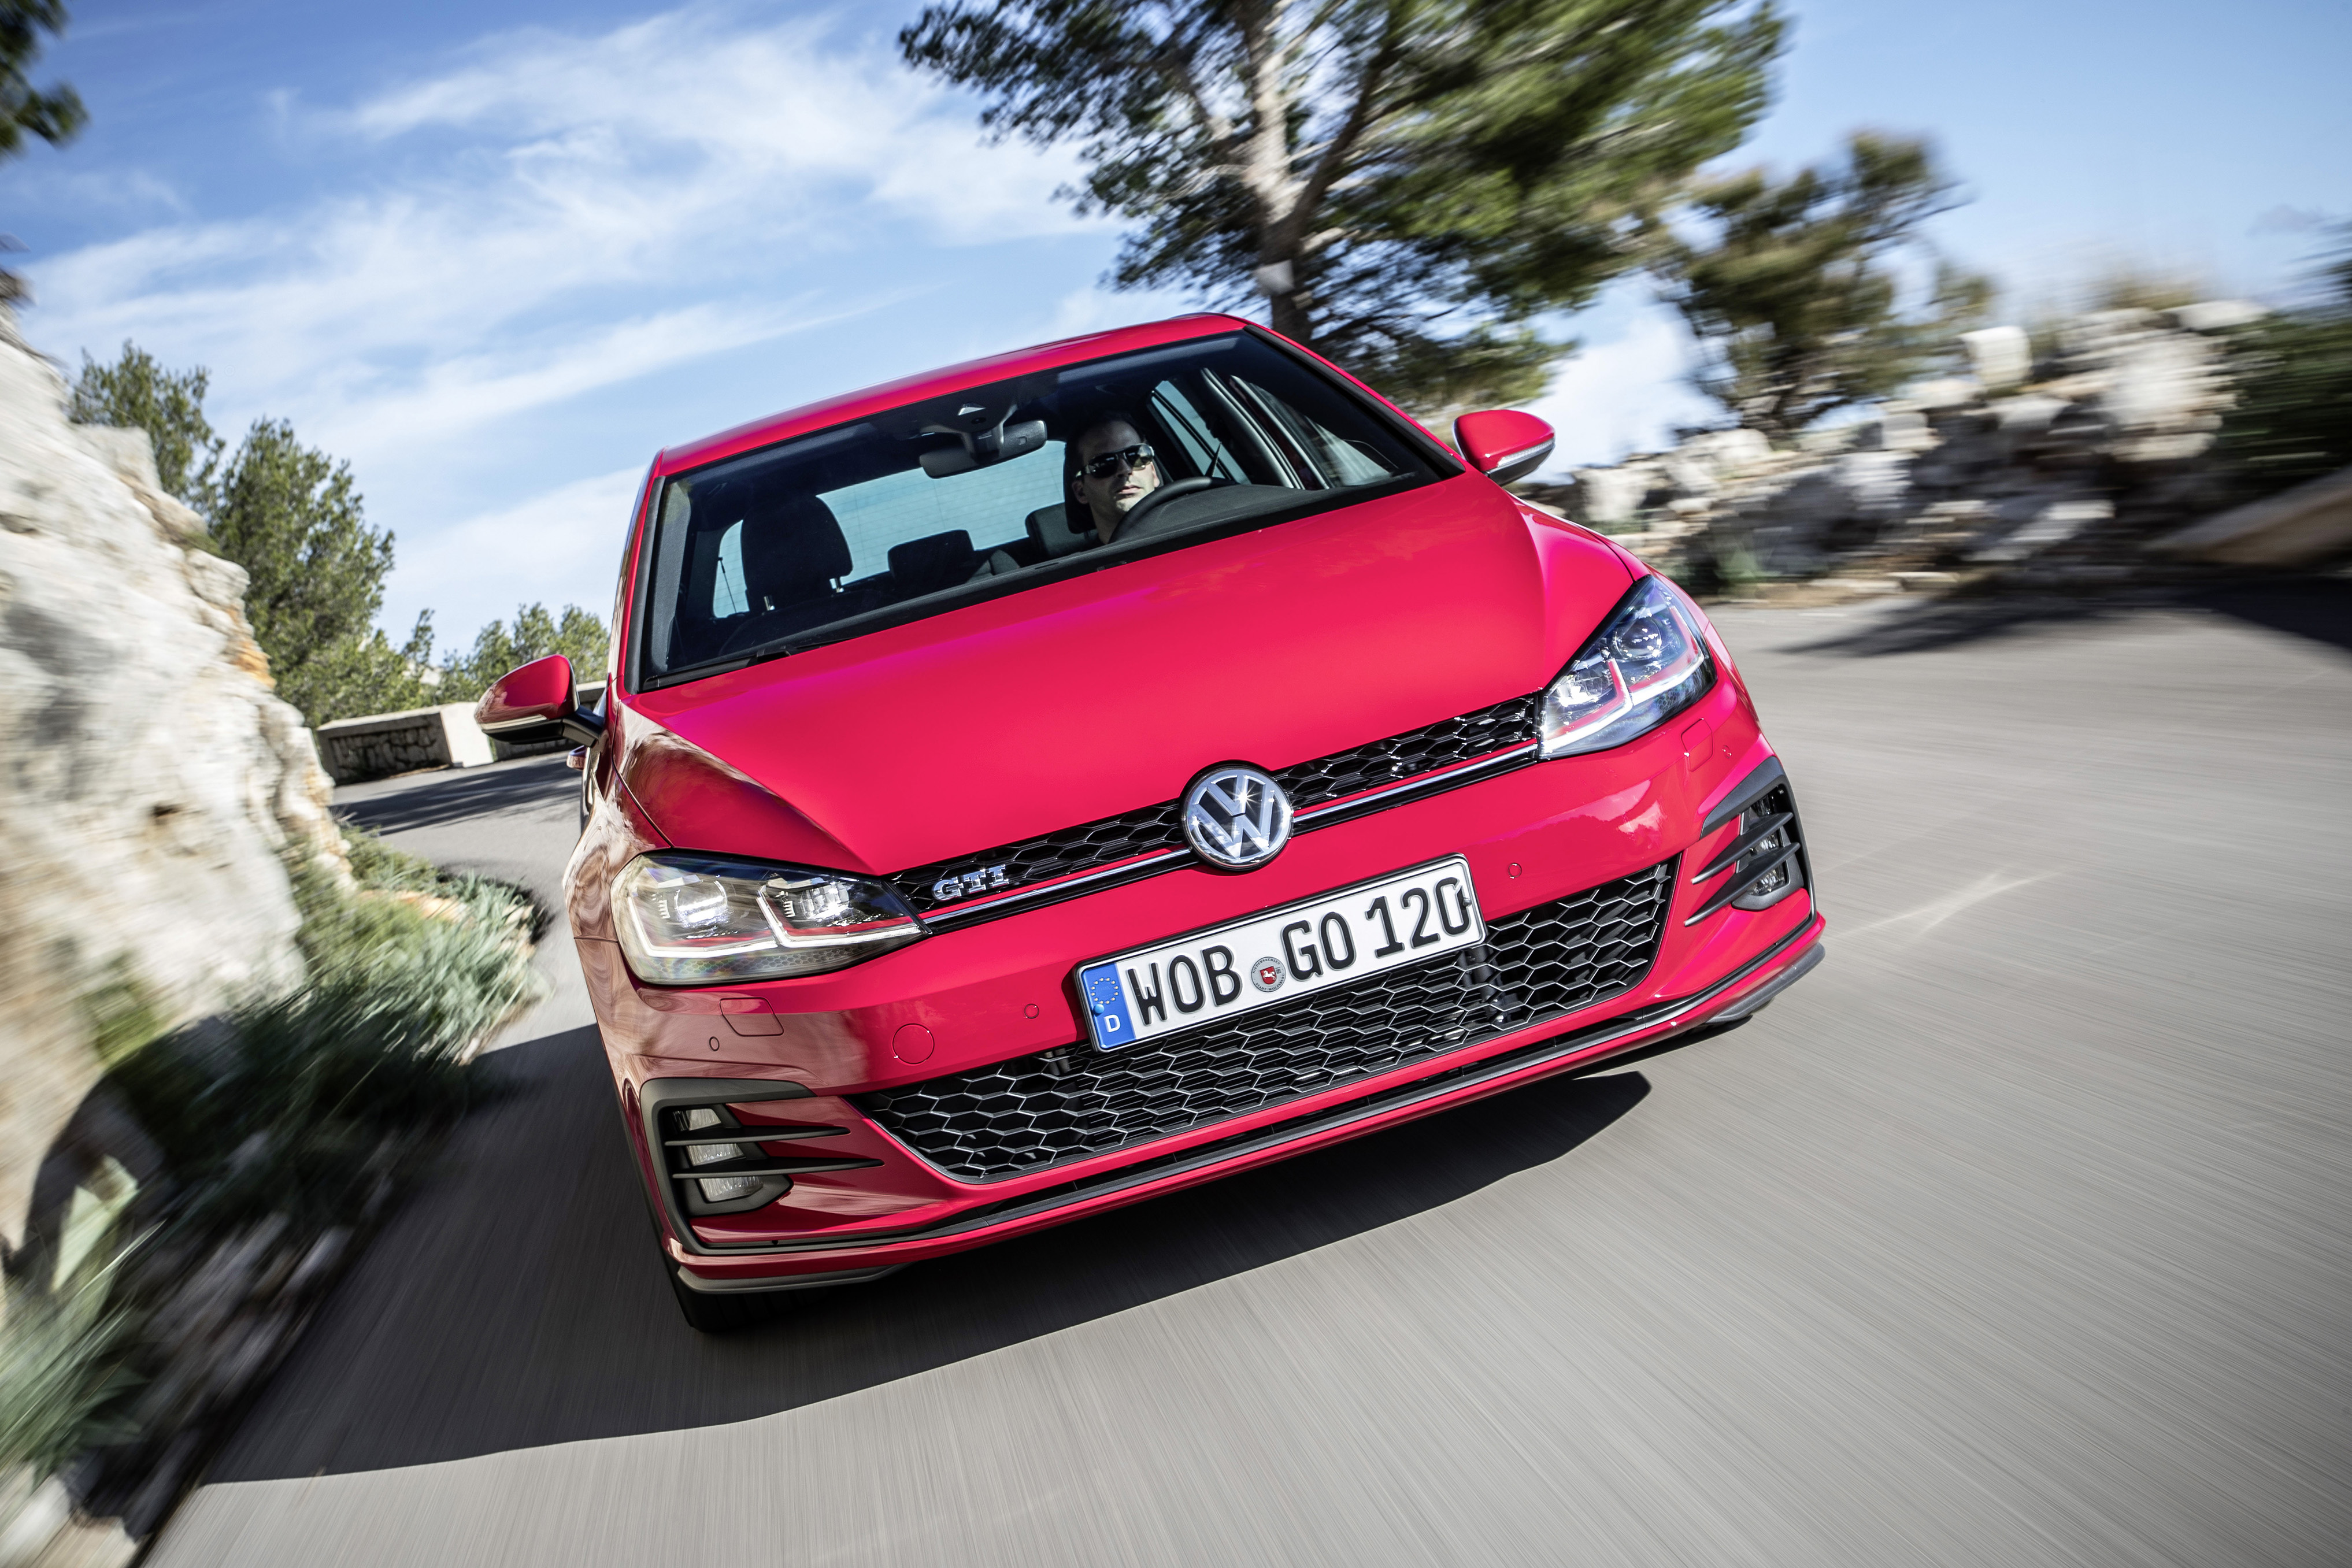 2018 Volkswagen Golf Gti Interior And Exterior Detailed In New